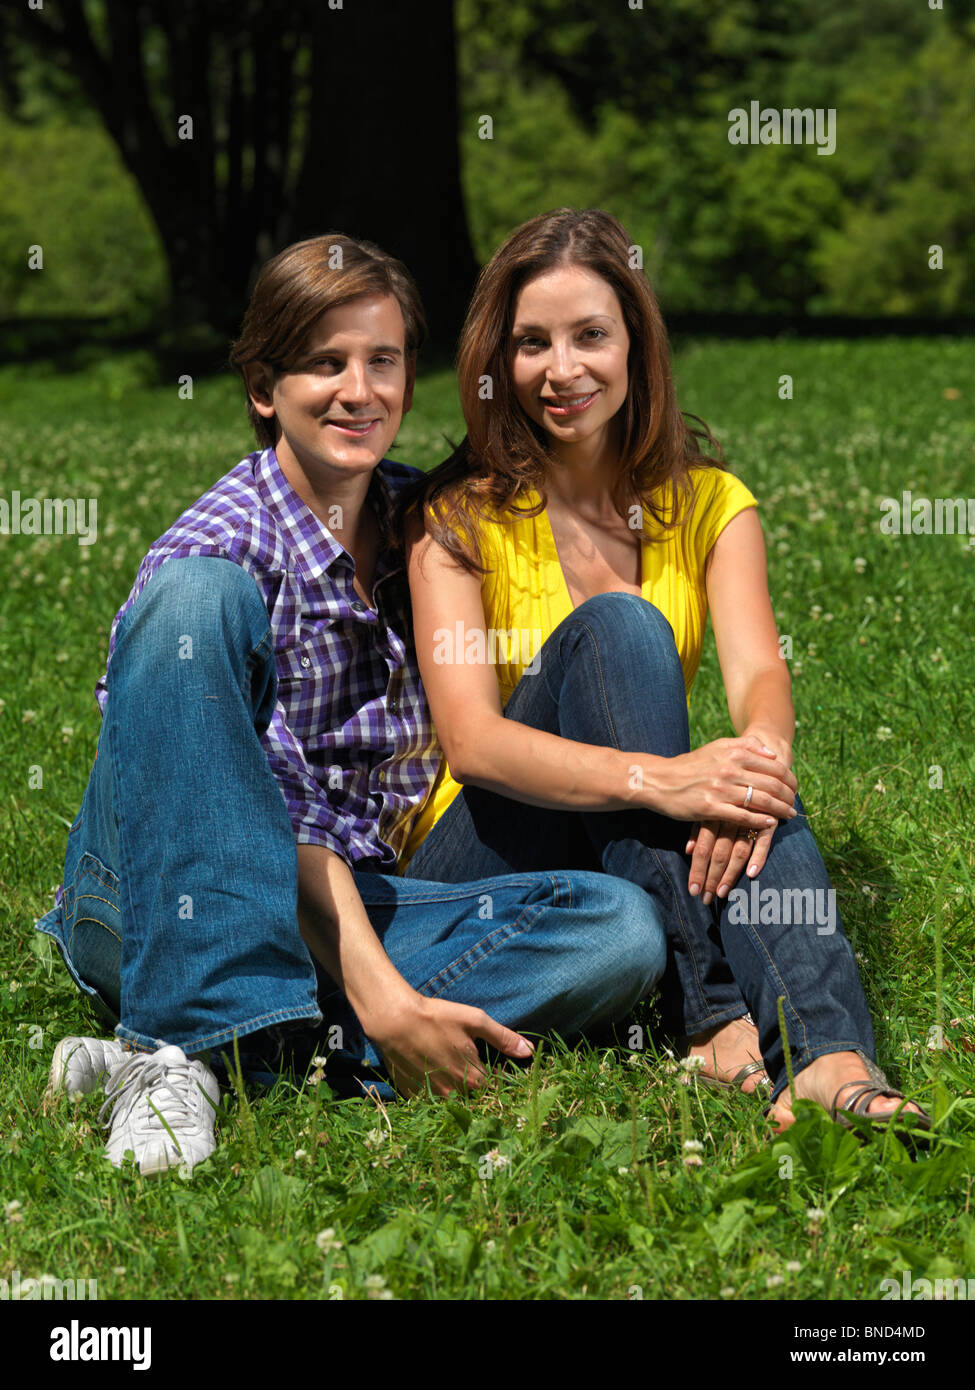 Young happy smiling couple in their early thirties sitting on grass in a park - Stock Image